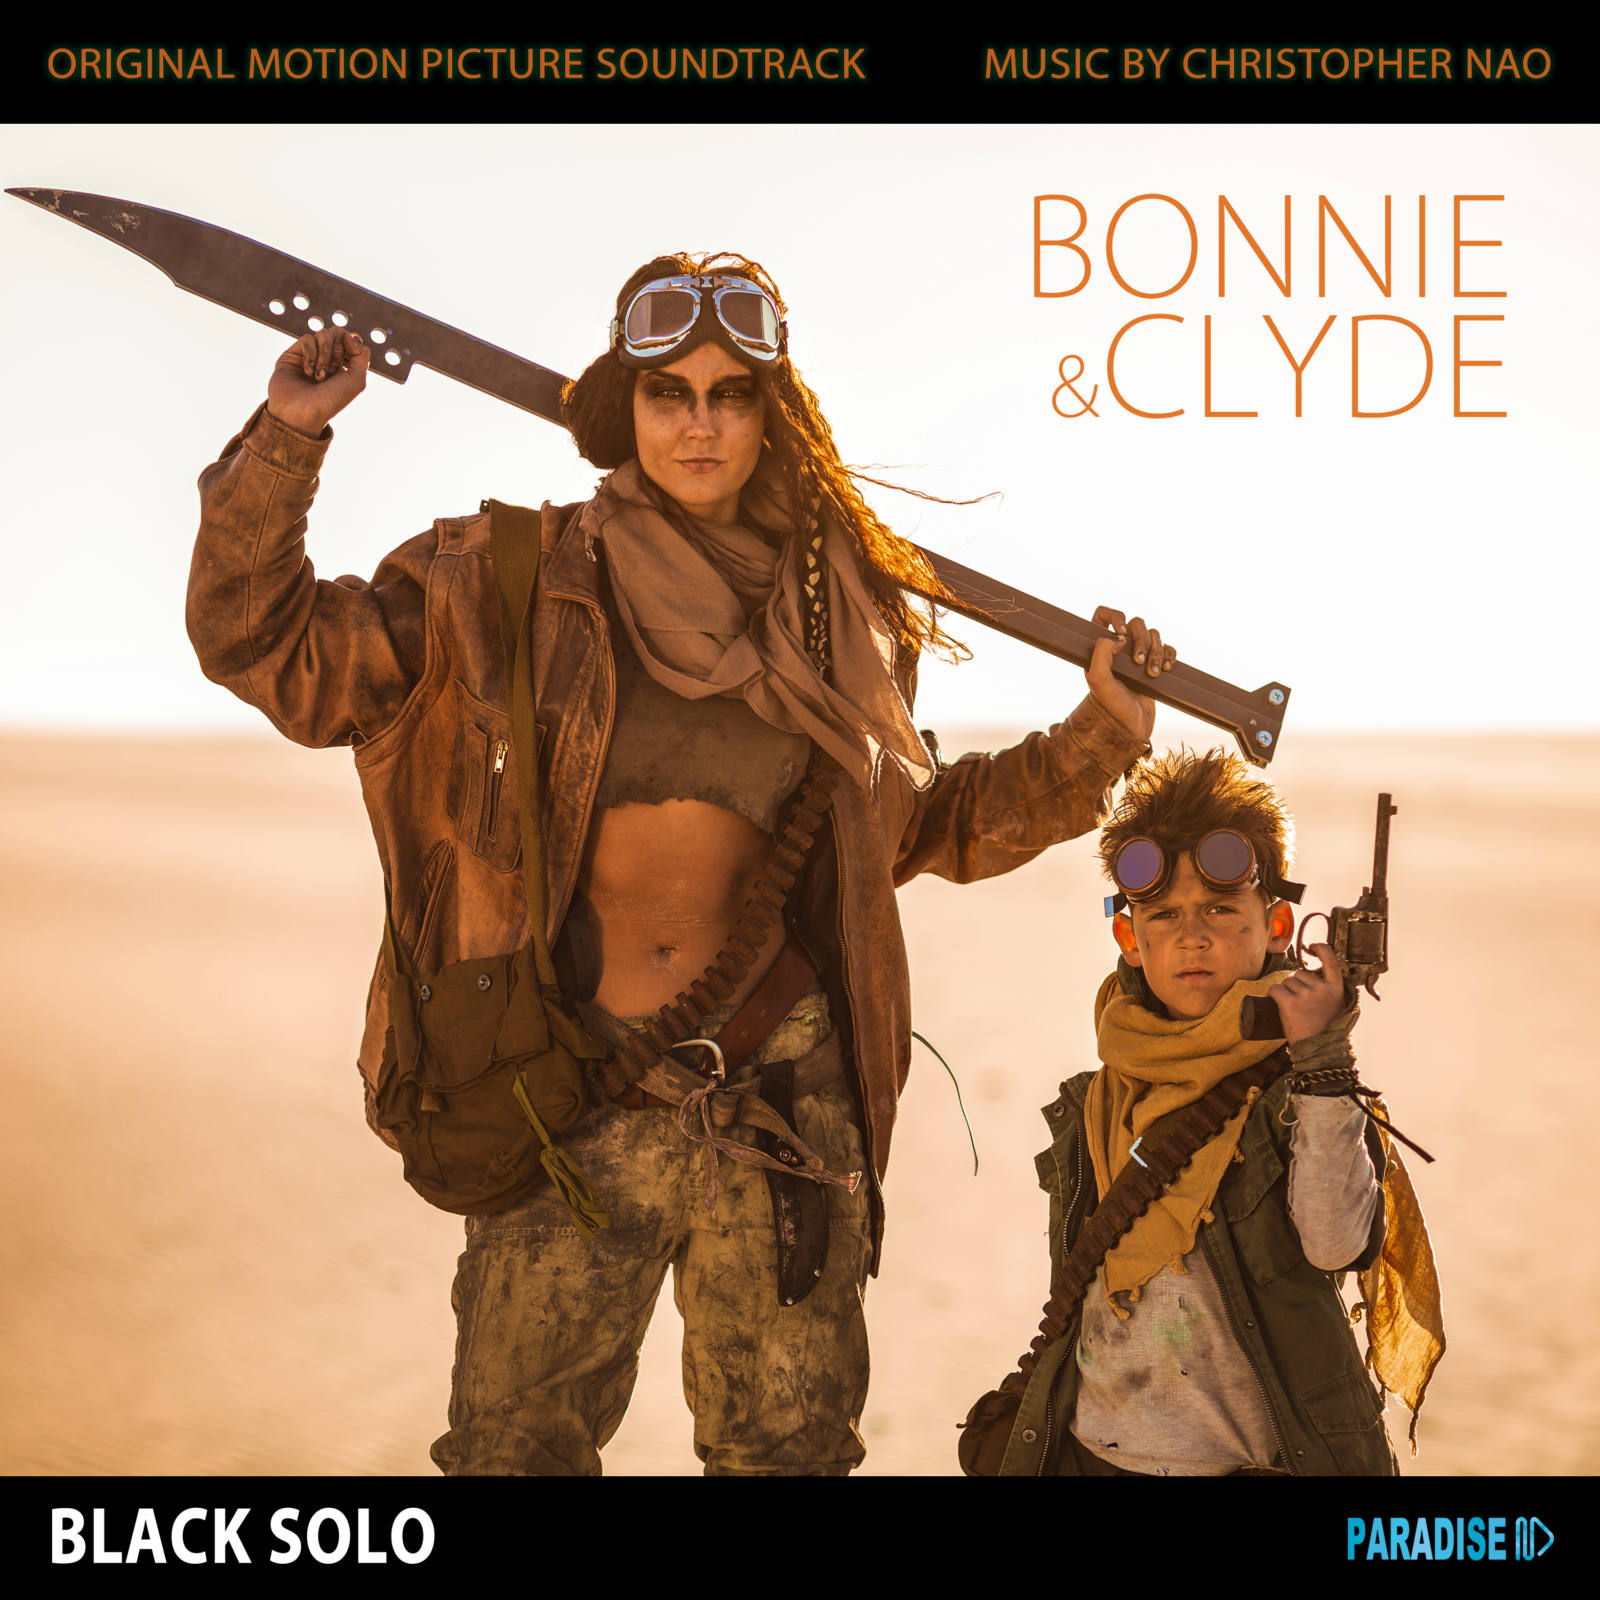 Bonnie and Clyde - Black Solo